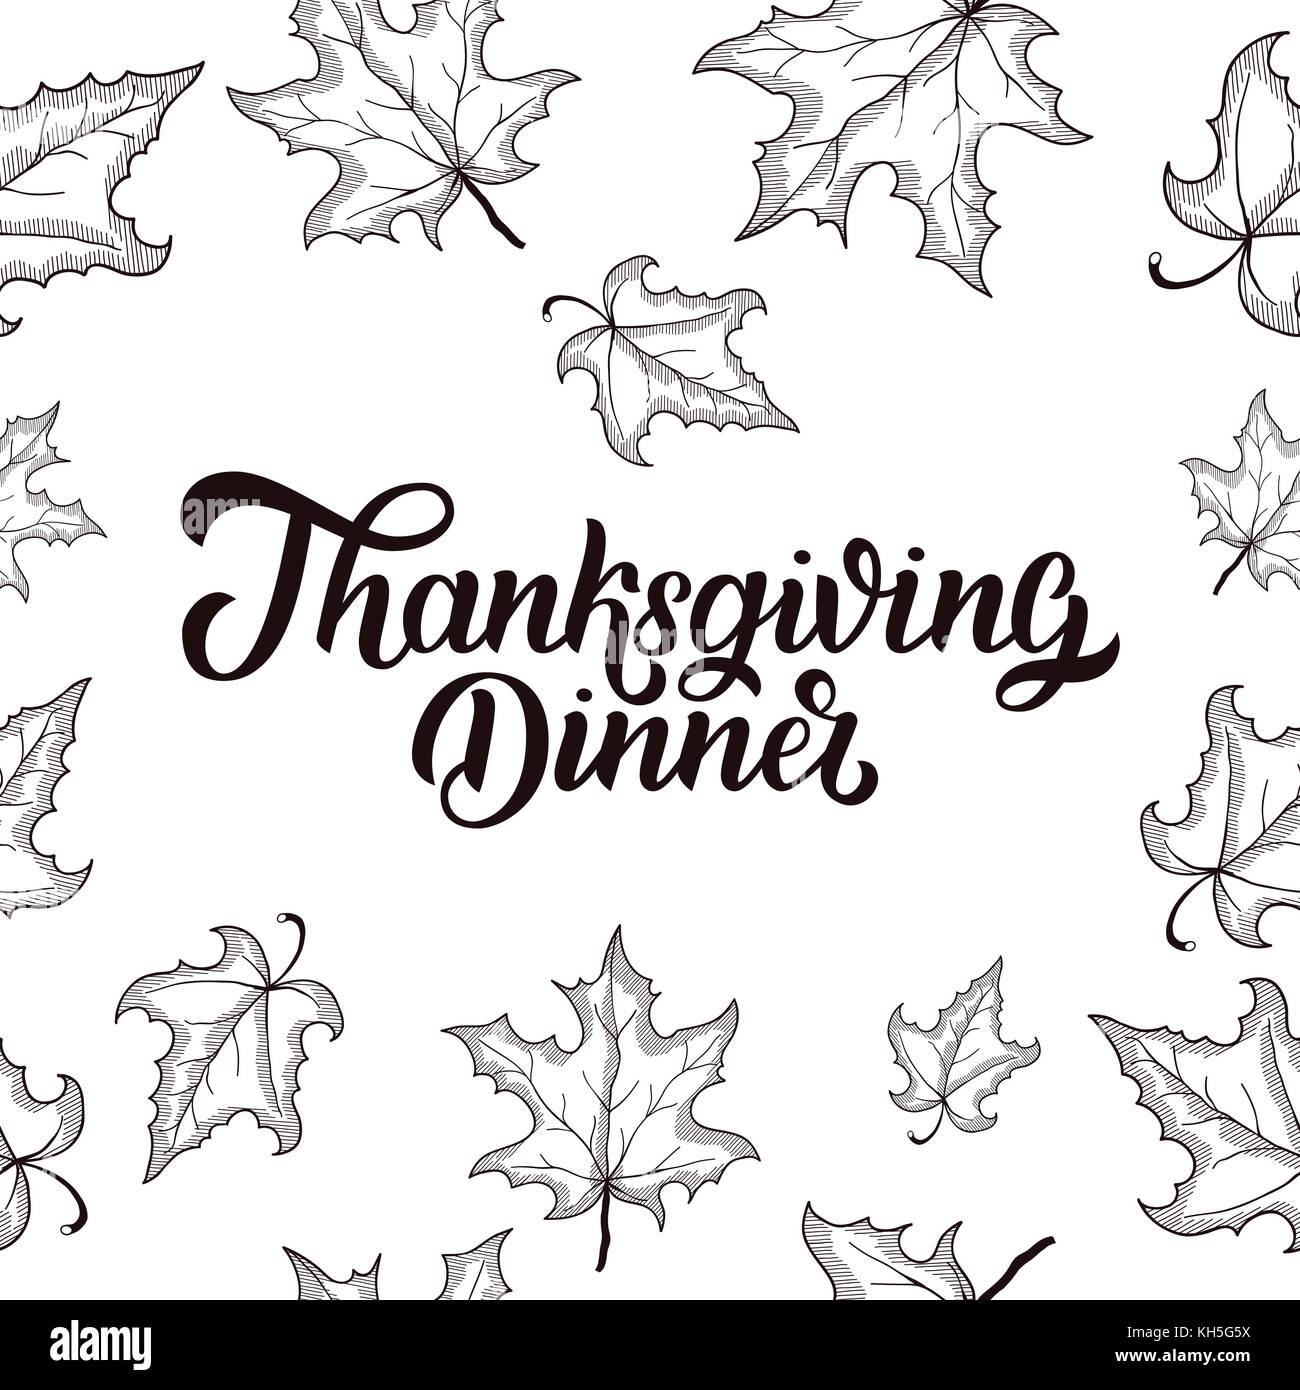 Thanksgiving Dinner Brush Hand Lettering With Maple Leaves Frame Isolated On White Background Calligraphy Vector Illustration For Holiday Type Desig